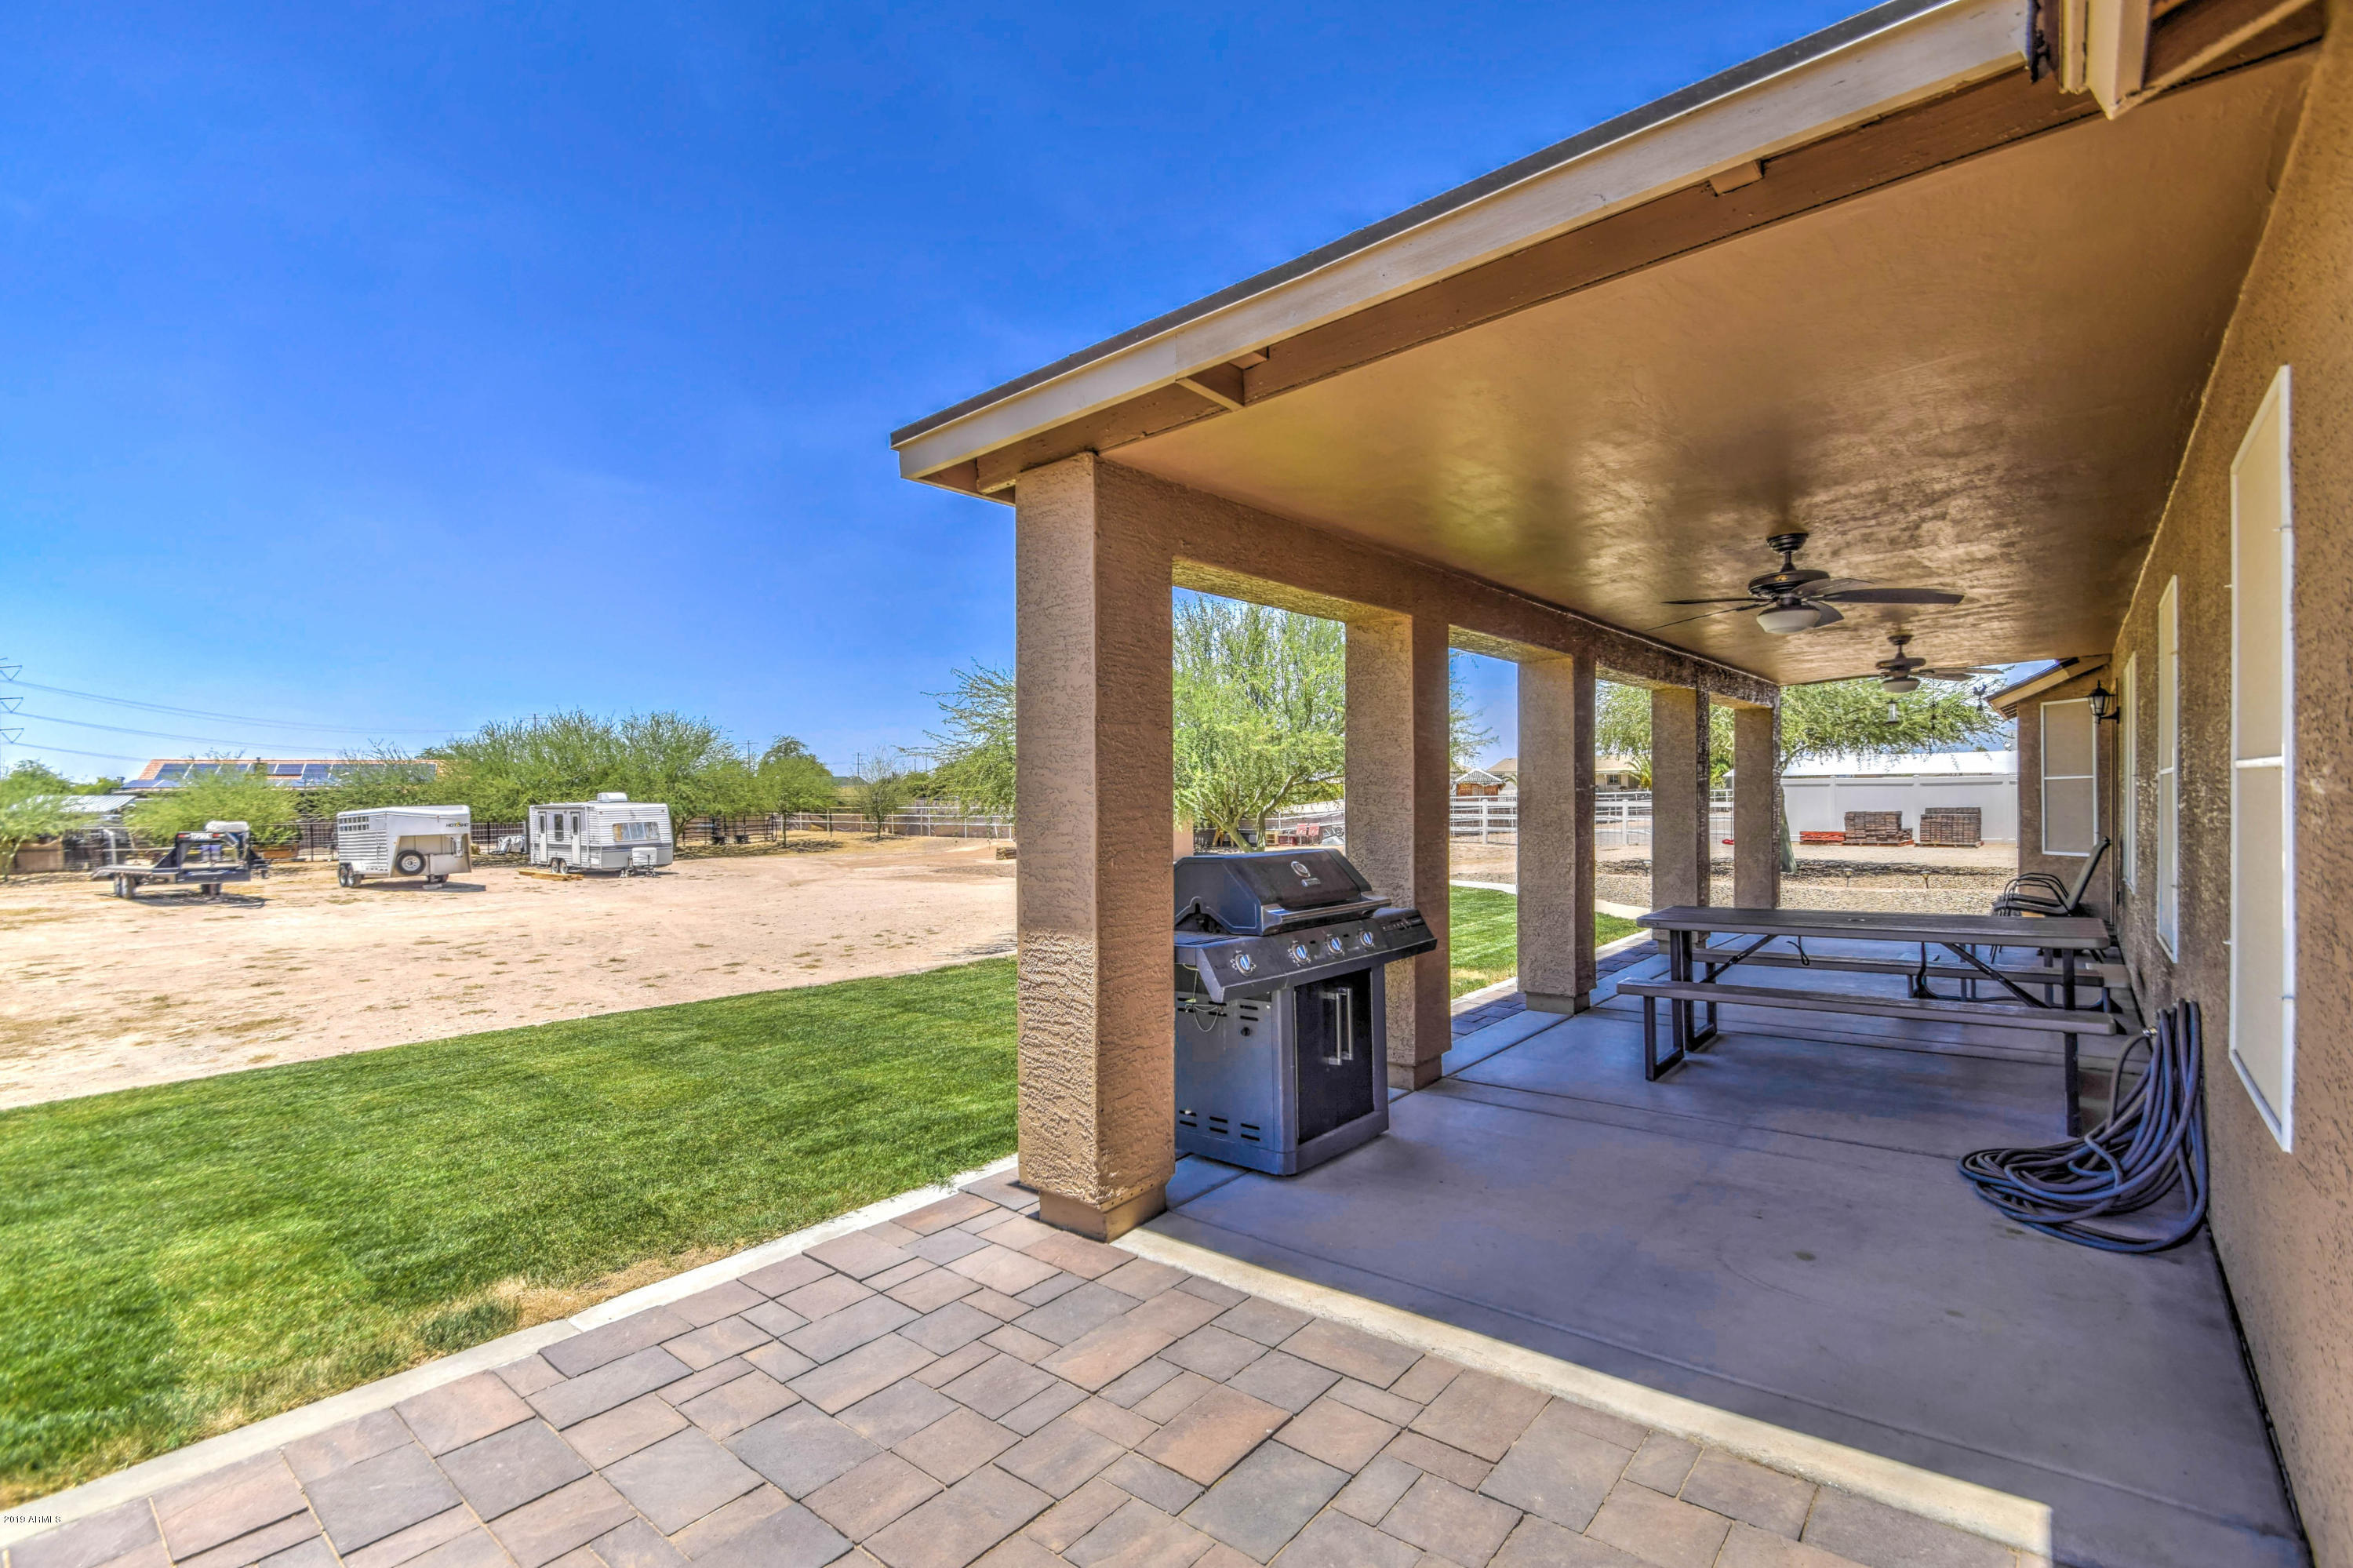 MLS 5944467 23582 N MUSTANG Way, Florence, AZ 85132 Florence AZ Luxury